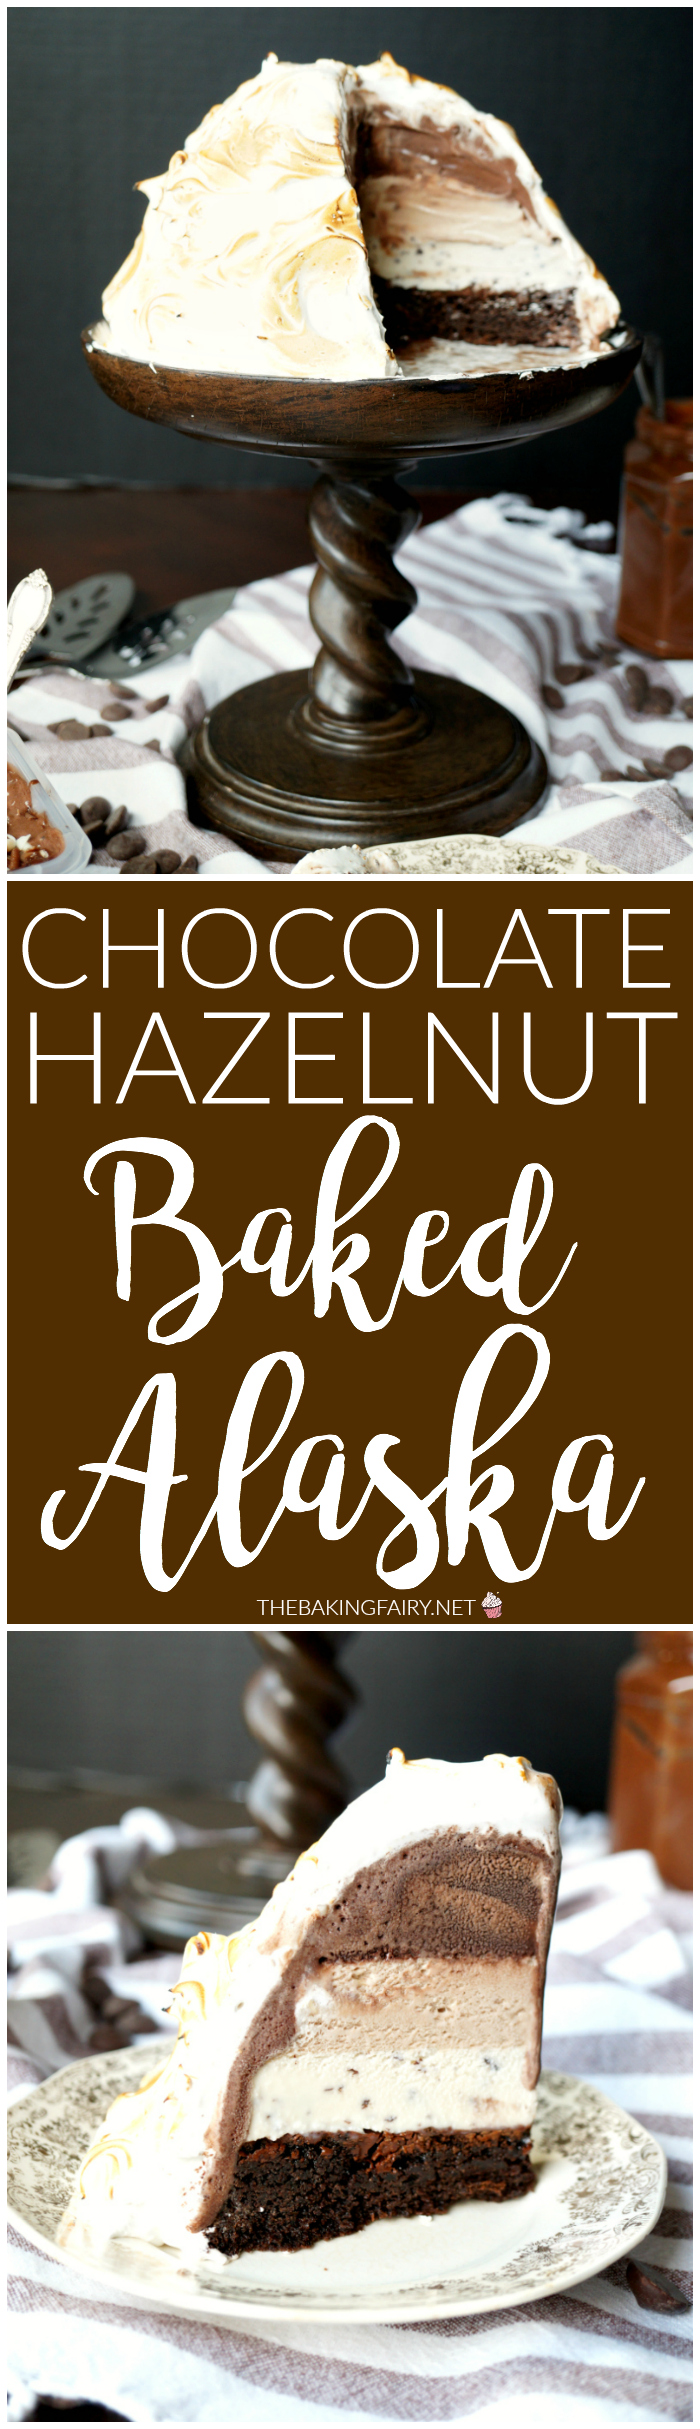 chocolate hazelnut layered Baked Alaska | The Baking Fairy